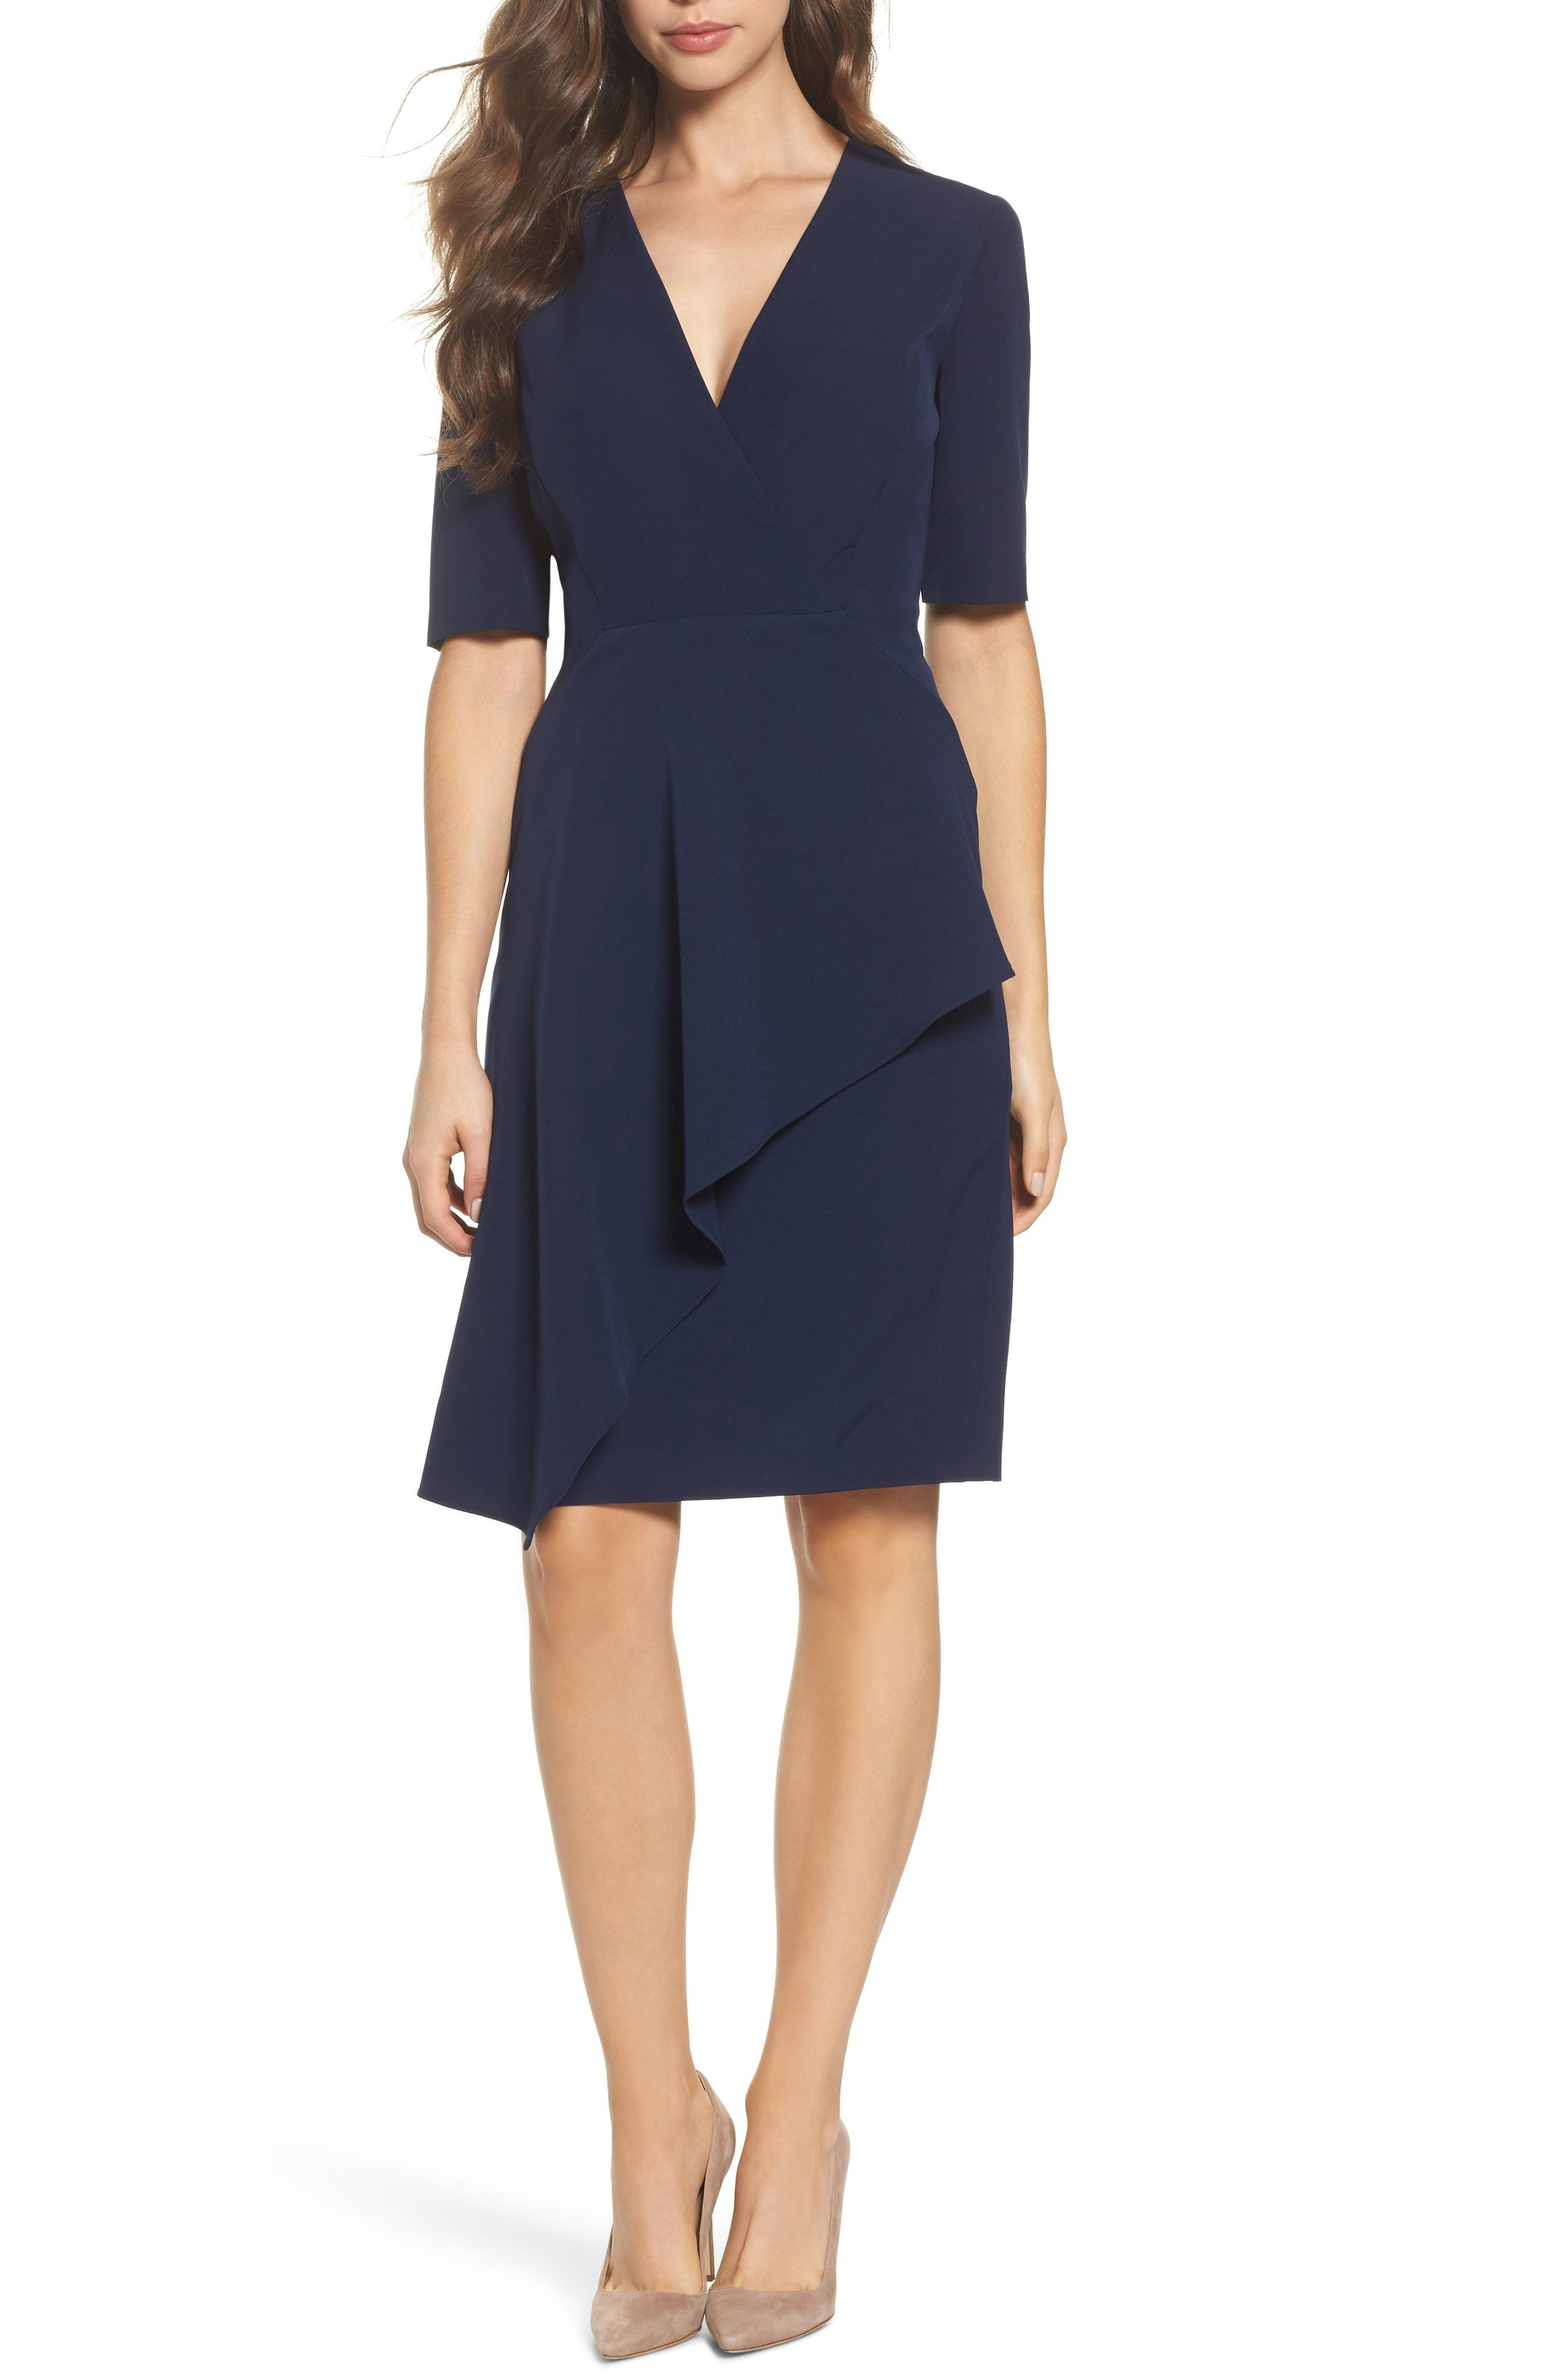 MAGGY LONDON Solid Dream Crepe Sheath Dark Navy Dress